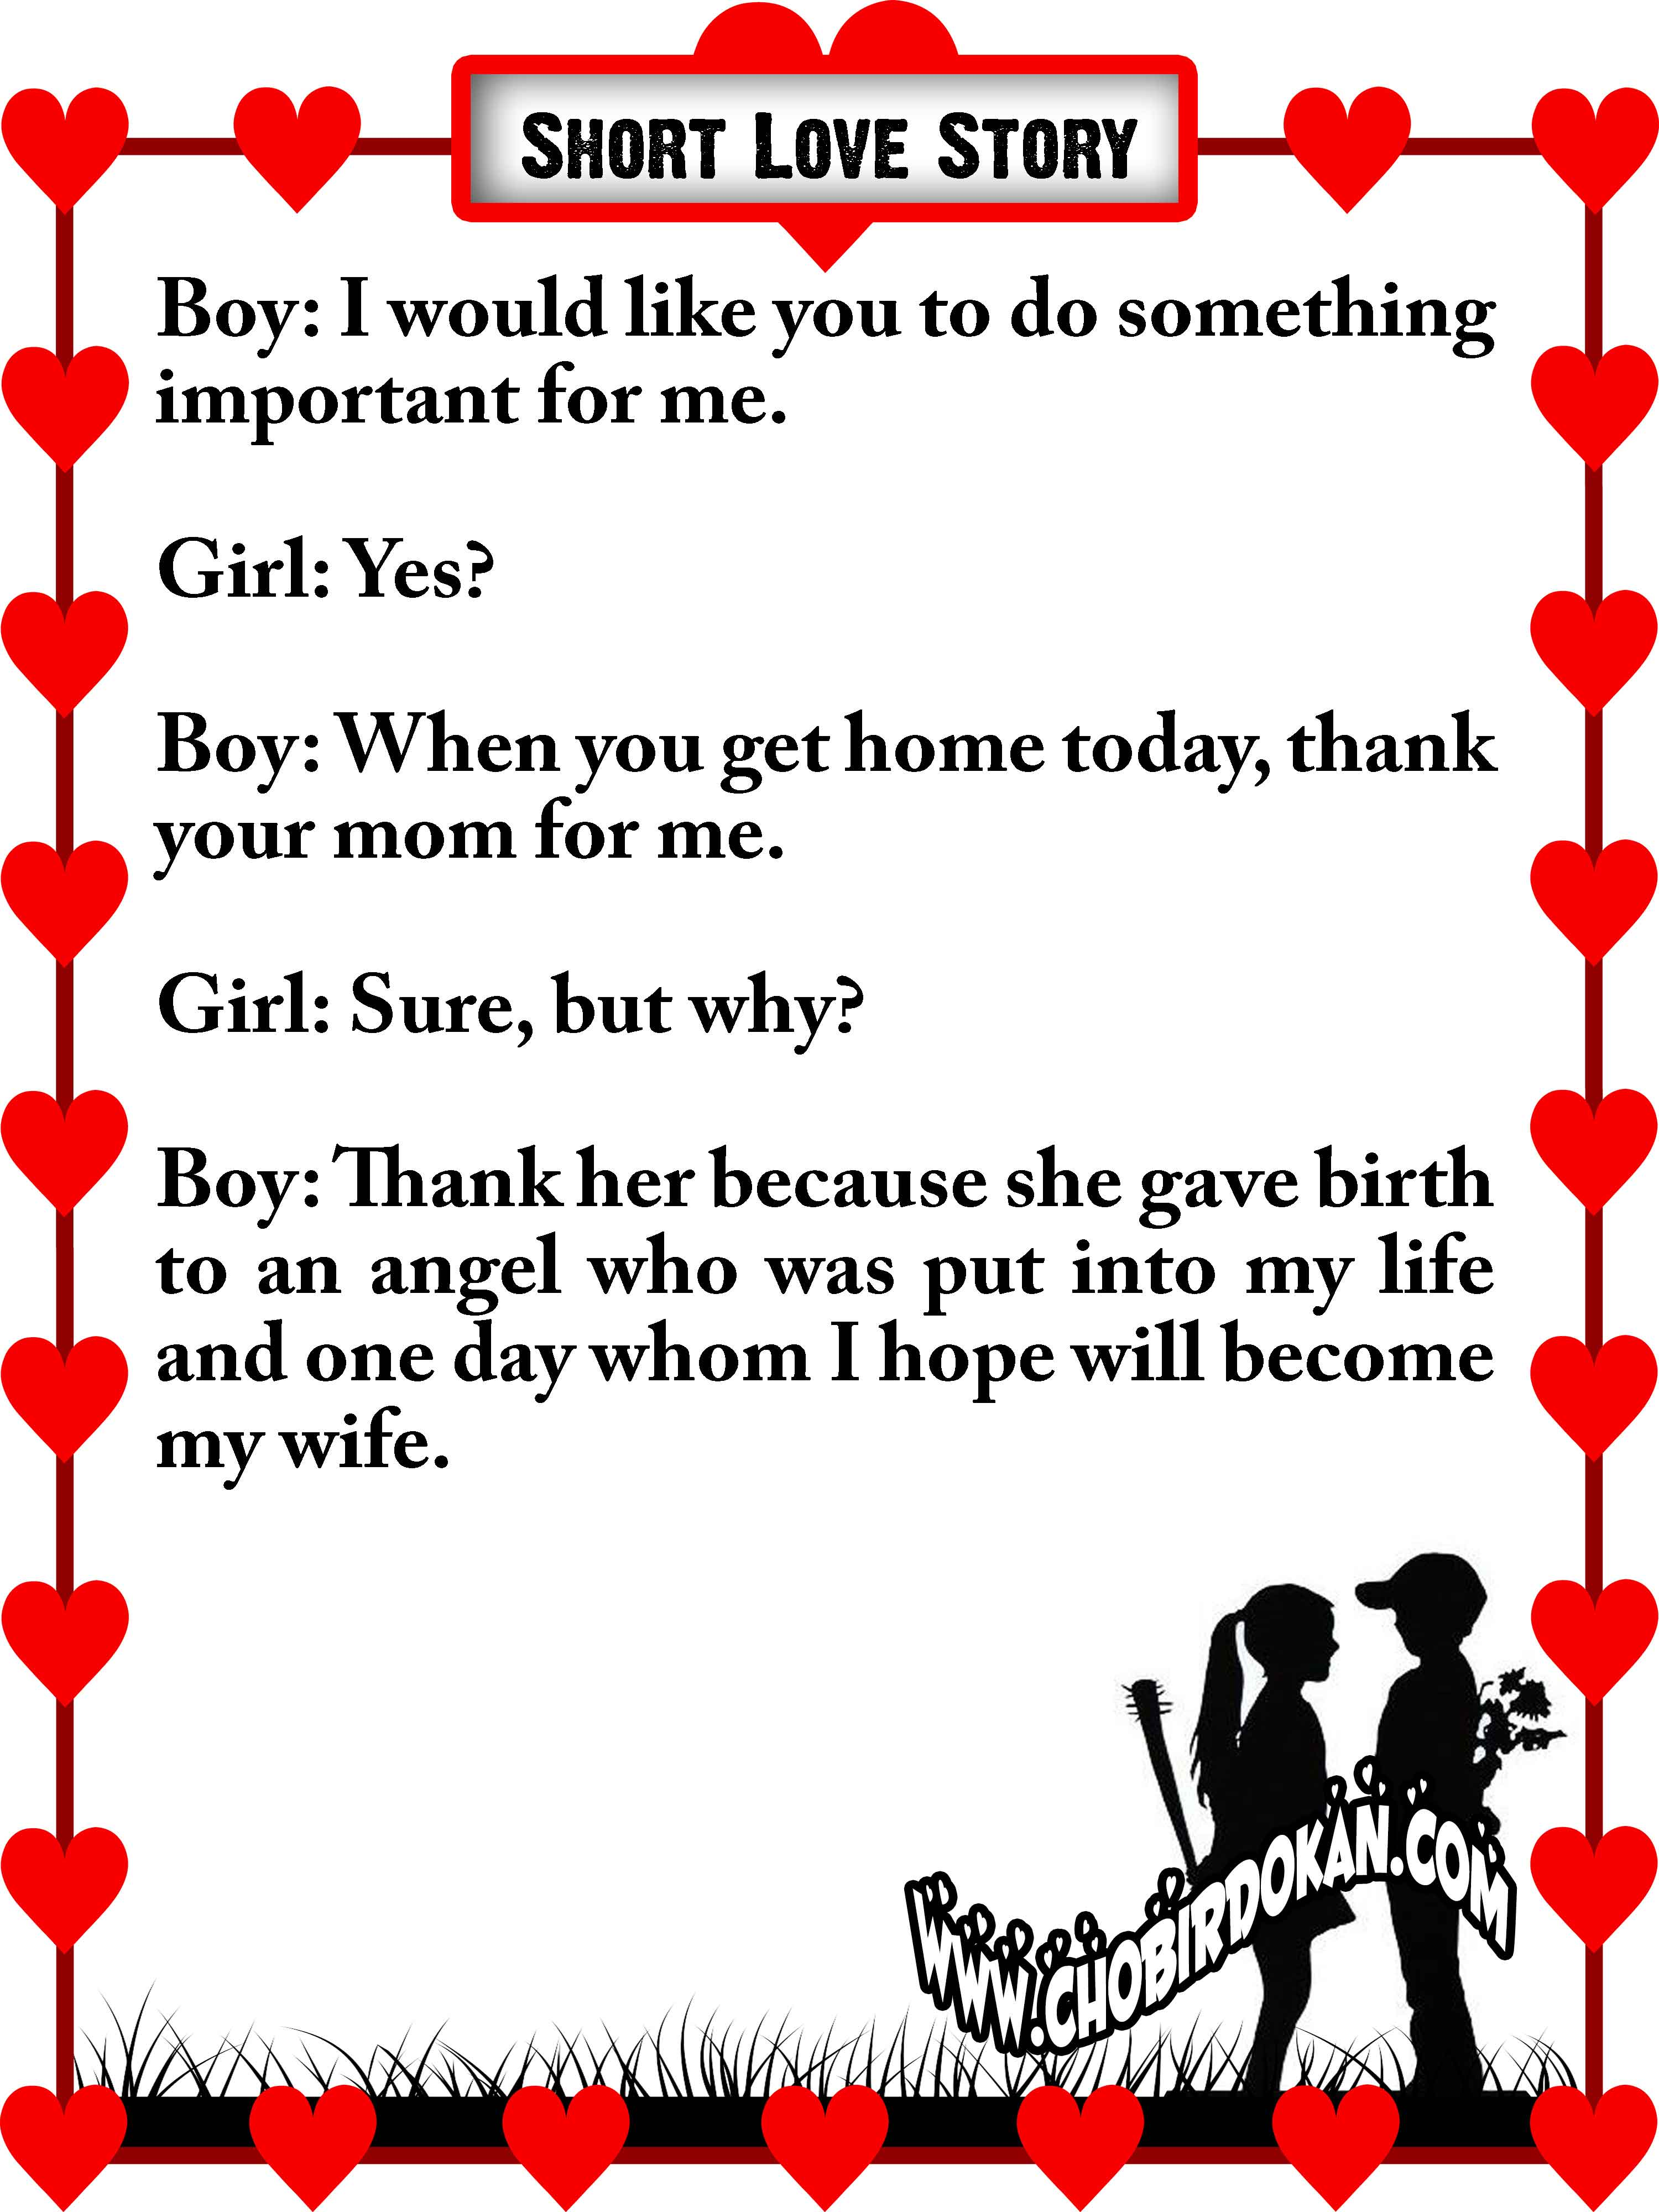 Cute stories to tell your girlfriend